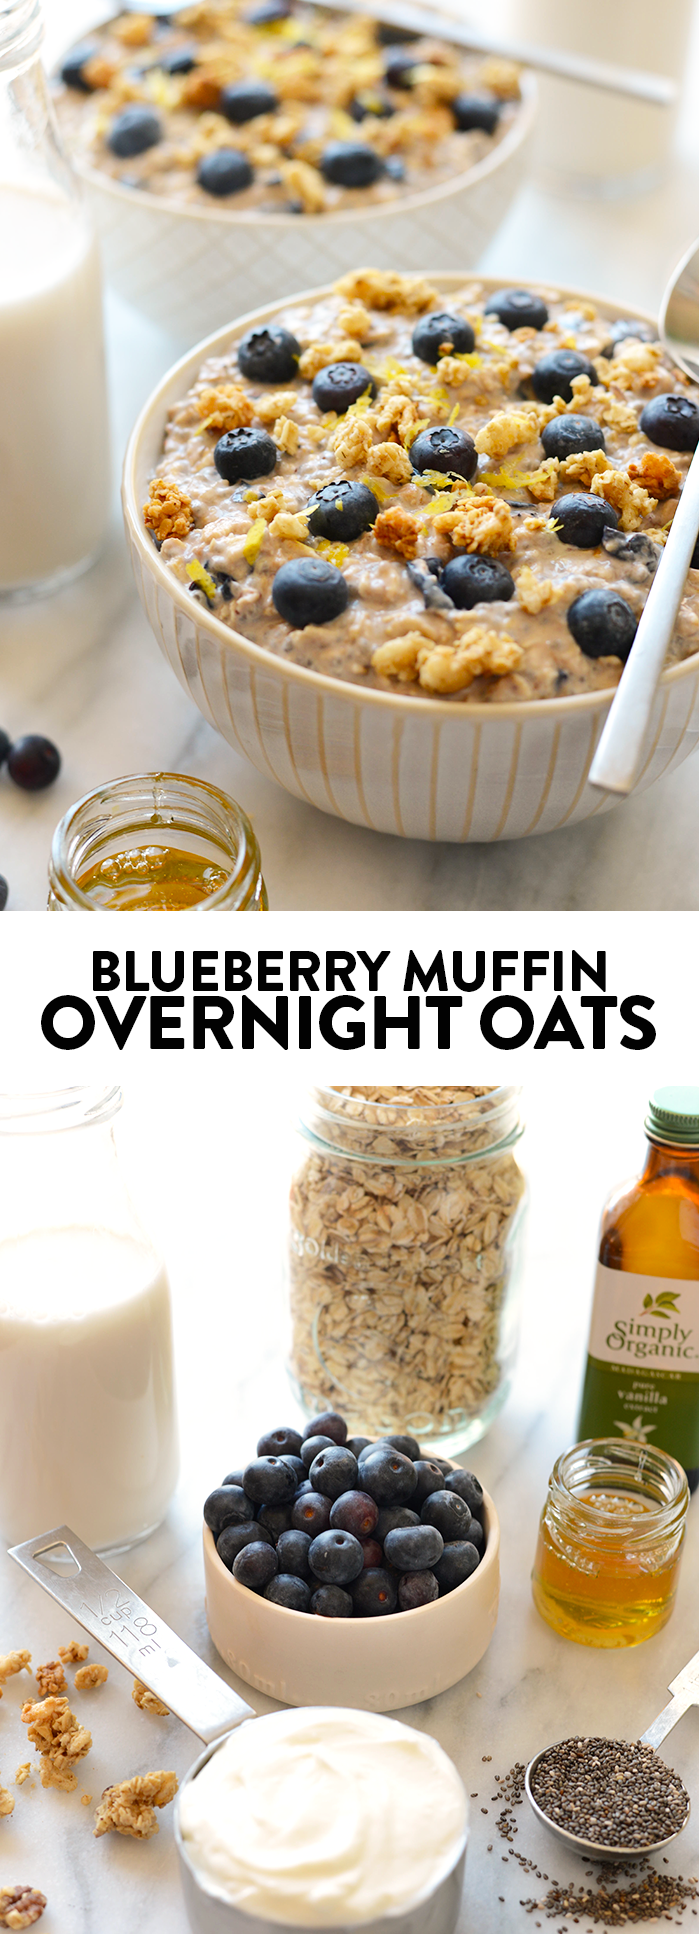 All the same flavors of a blueberry muffin but 100% better for you! Make these Blueberry Muffin Overnight Oats tomorrow for a healthy breakfast.